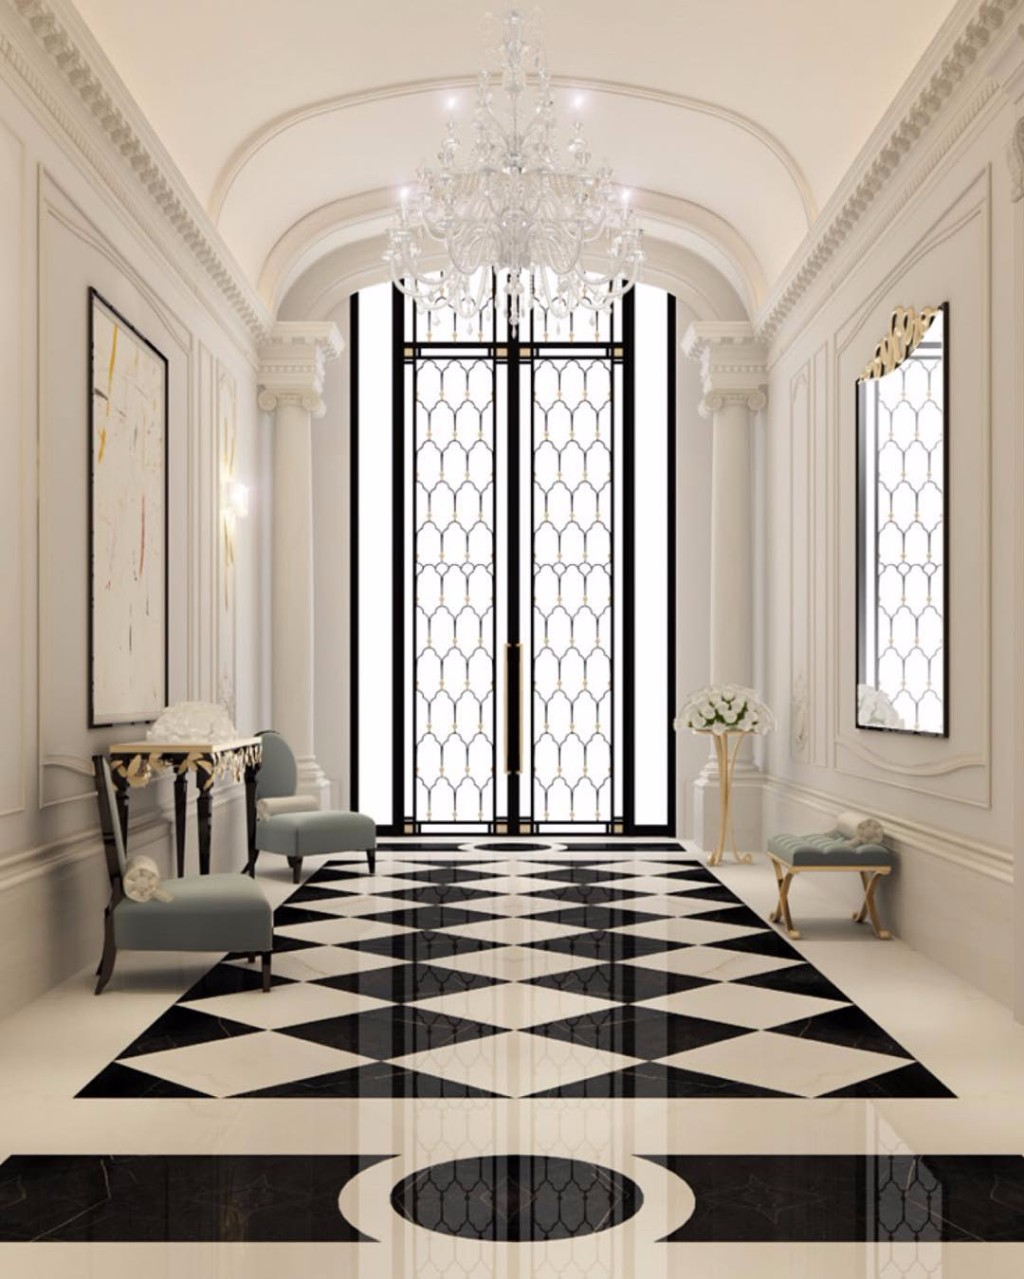 10 Dreamy Interiors With Black And White Checkered Floor